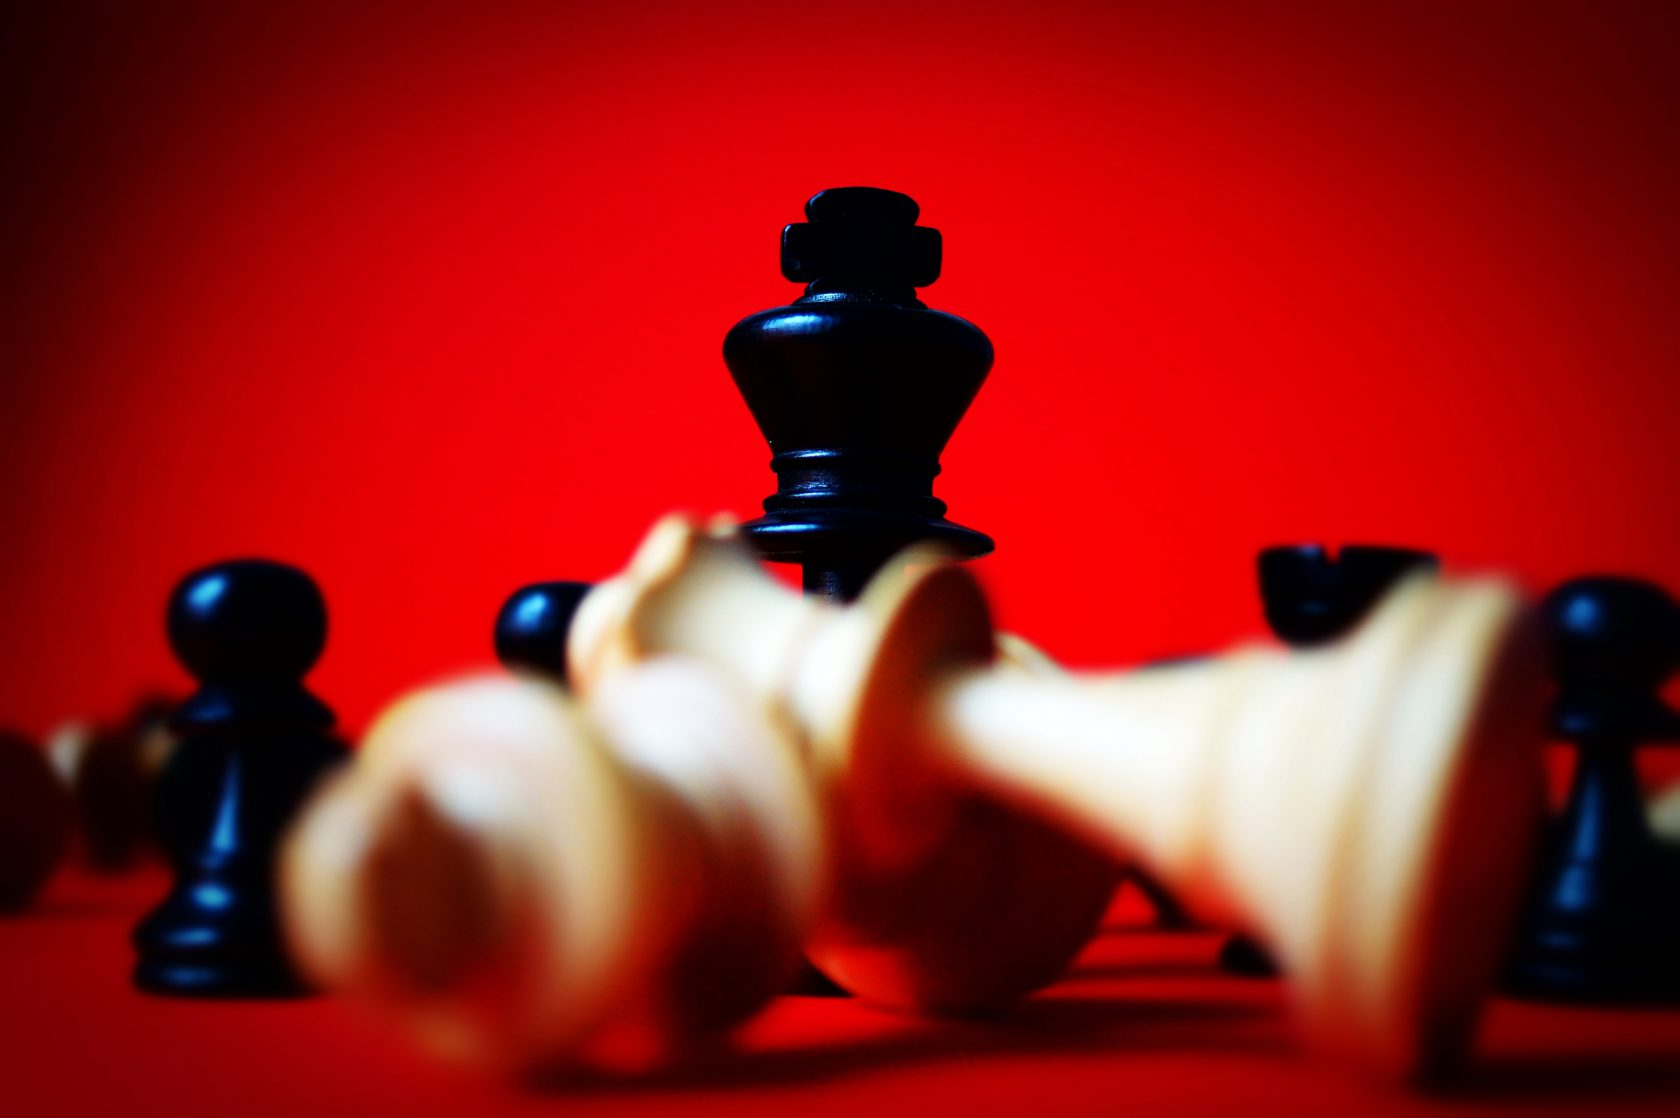 black-chess-chess-pieces-131615